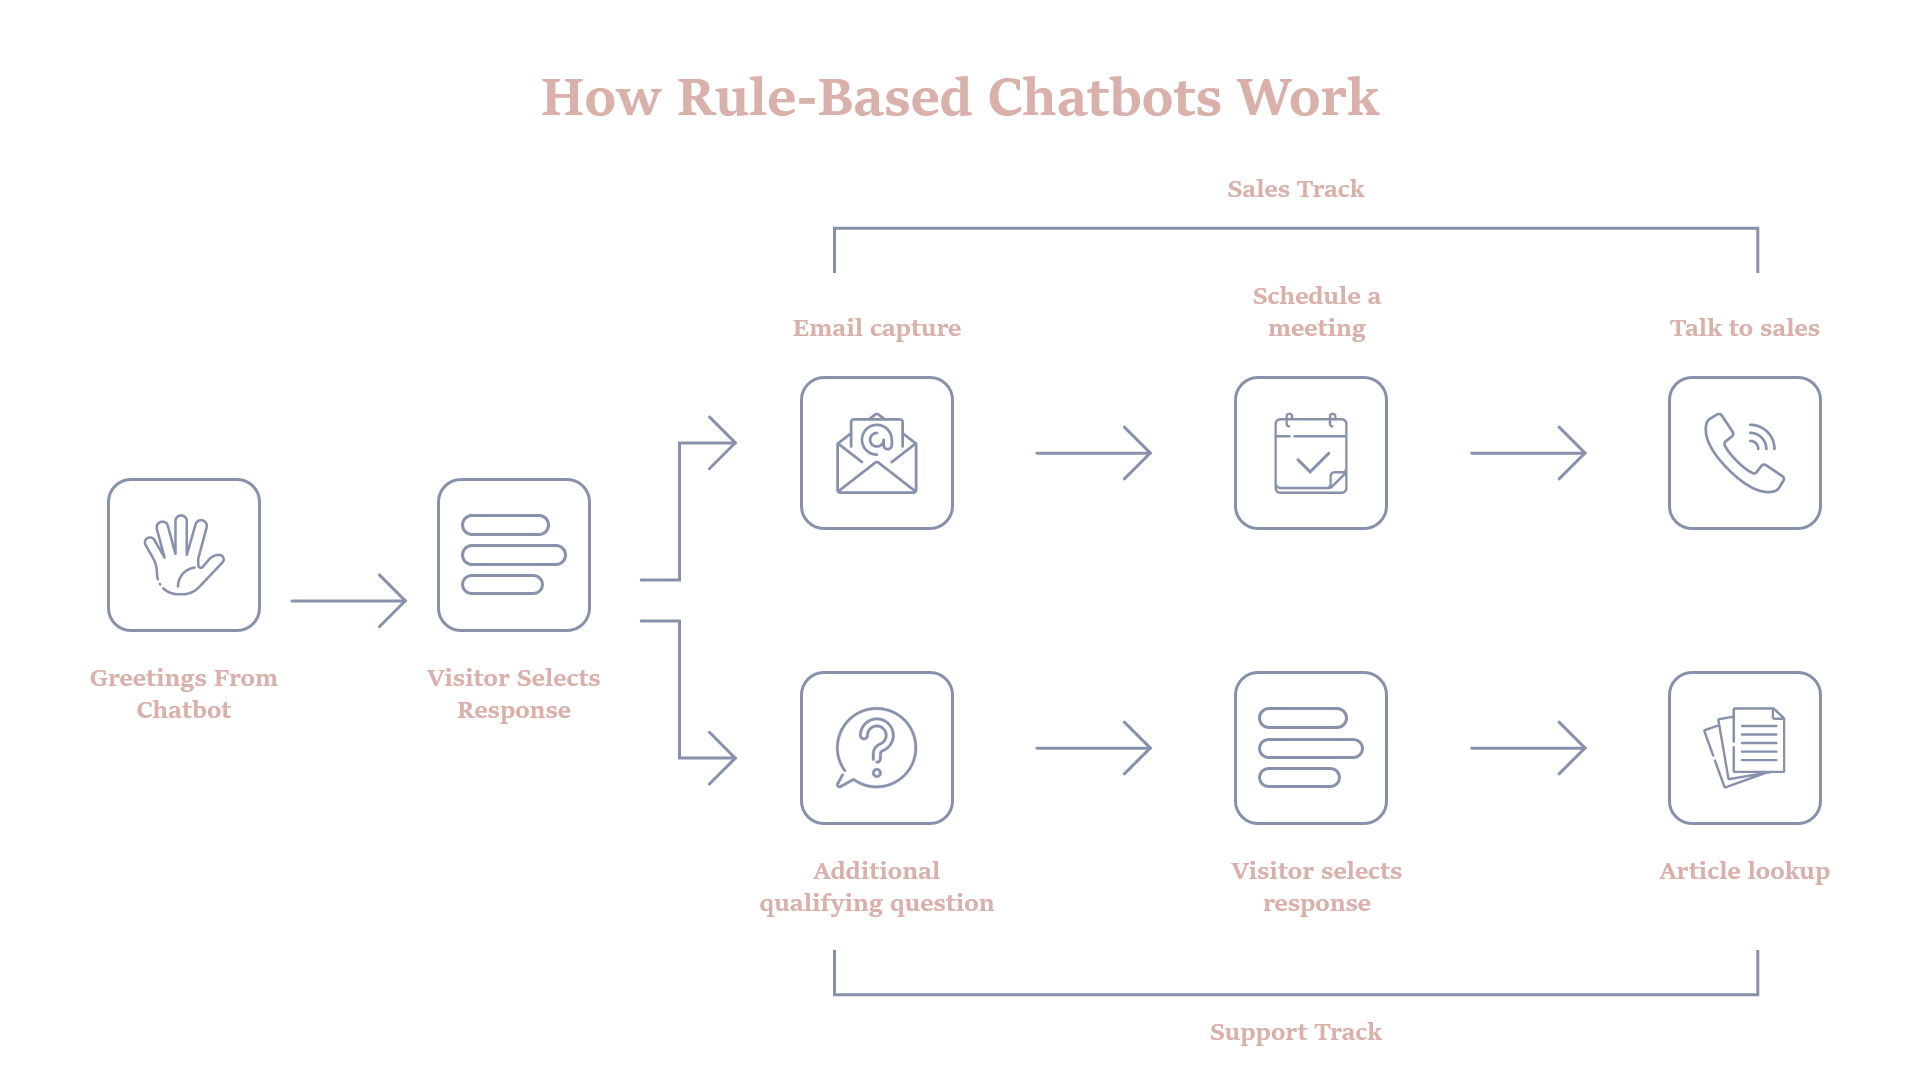 How to Make a Chatbot: Rules-Based Chatbot